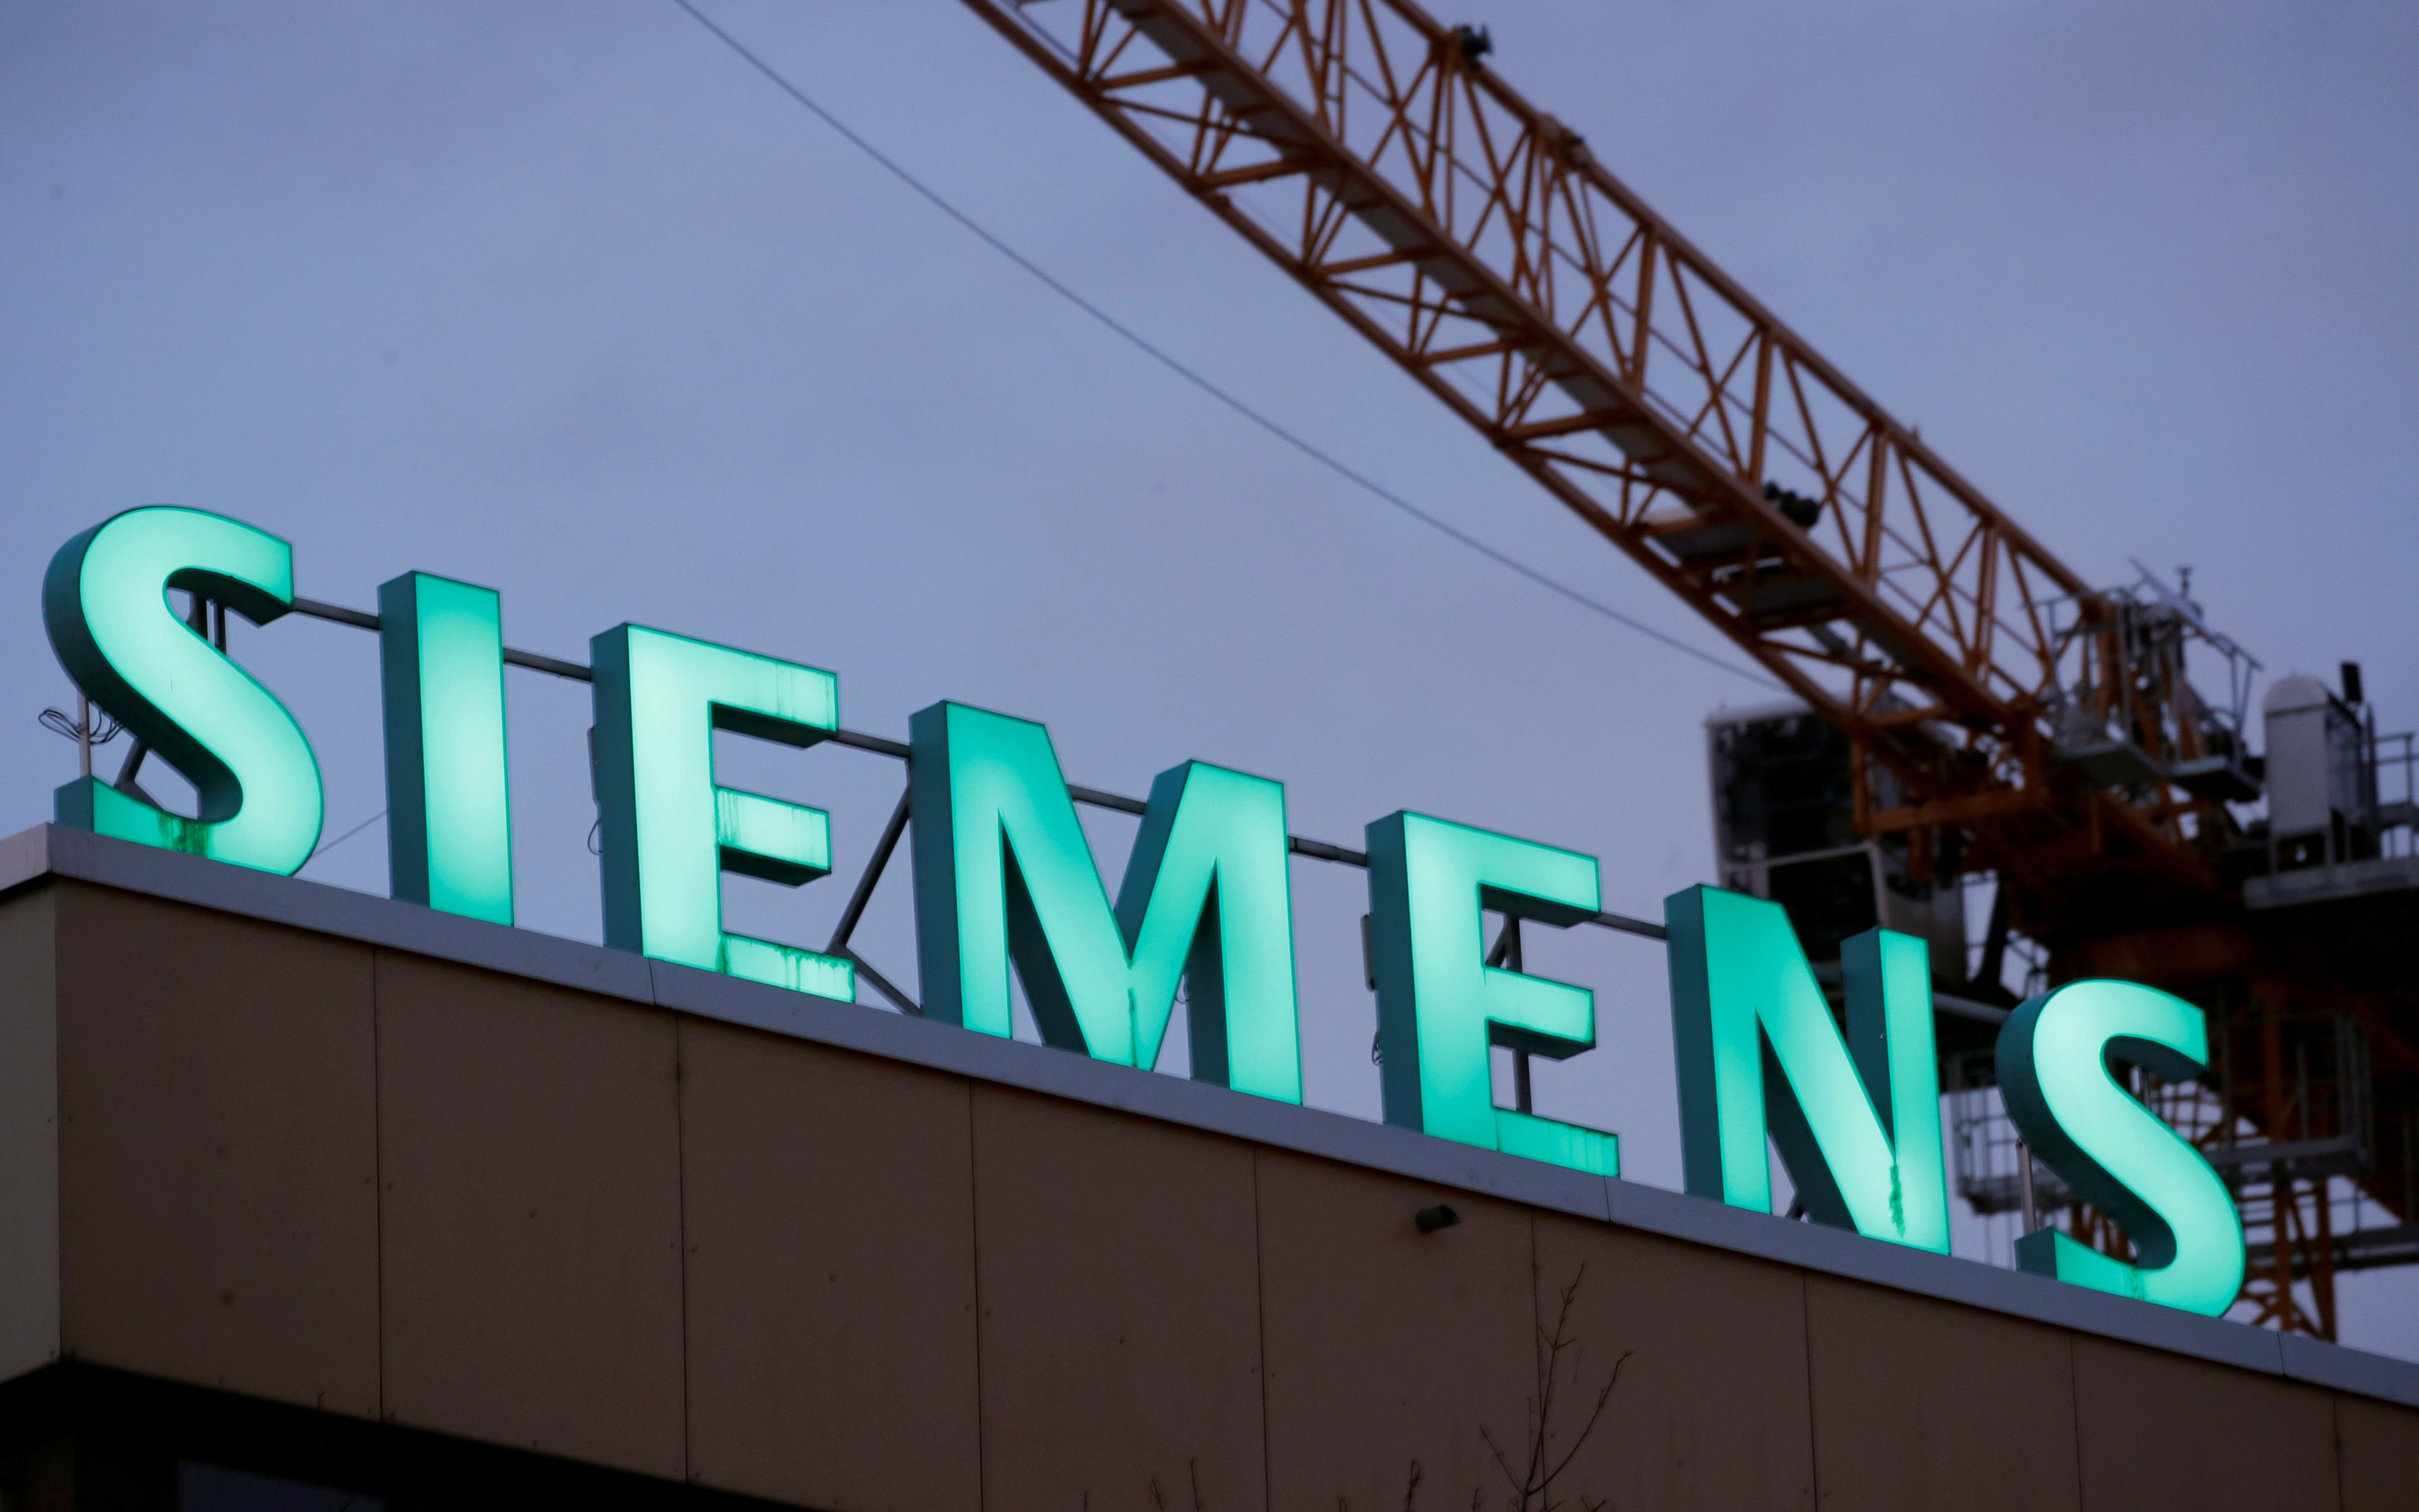 Siemens and partners to invest 30 million euros in Goerlitz site